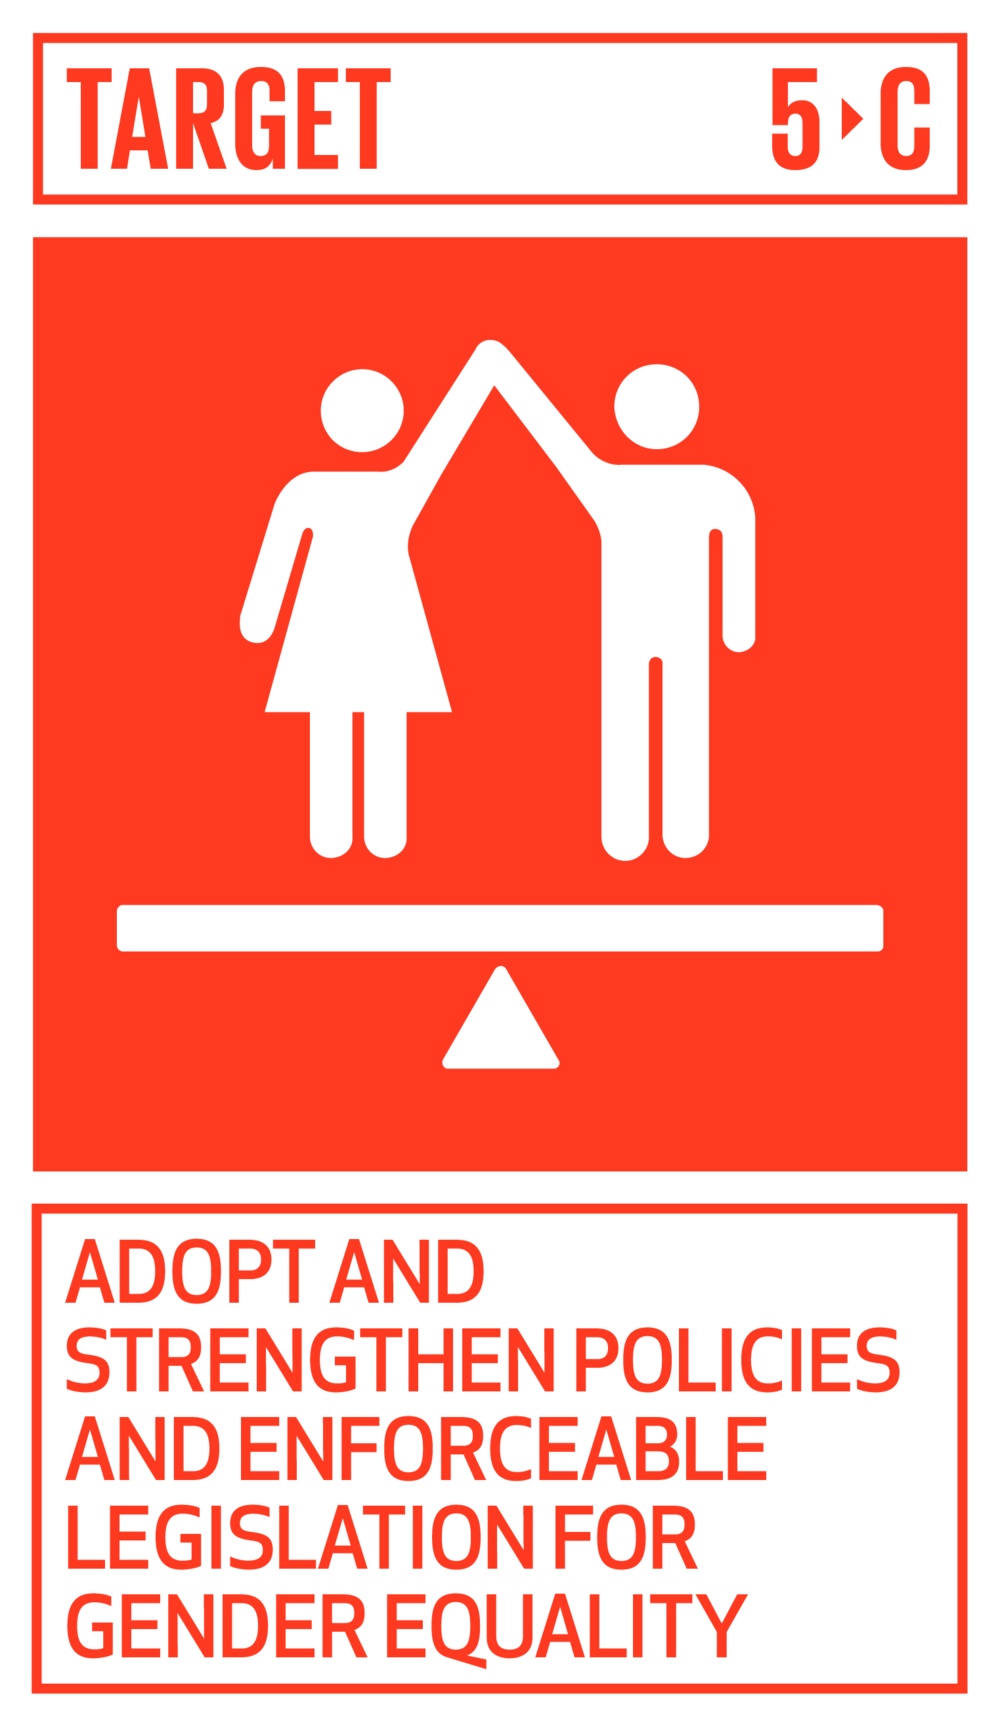 Adopt and strengthen sound policies and enforceable legislation for the promotion of gender equality and the empowerment of all women and girls at all levels.   INDICATOR    5.c.1  Proportion of countries with systems to track and make public allocations for gender equality and women's empowerment